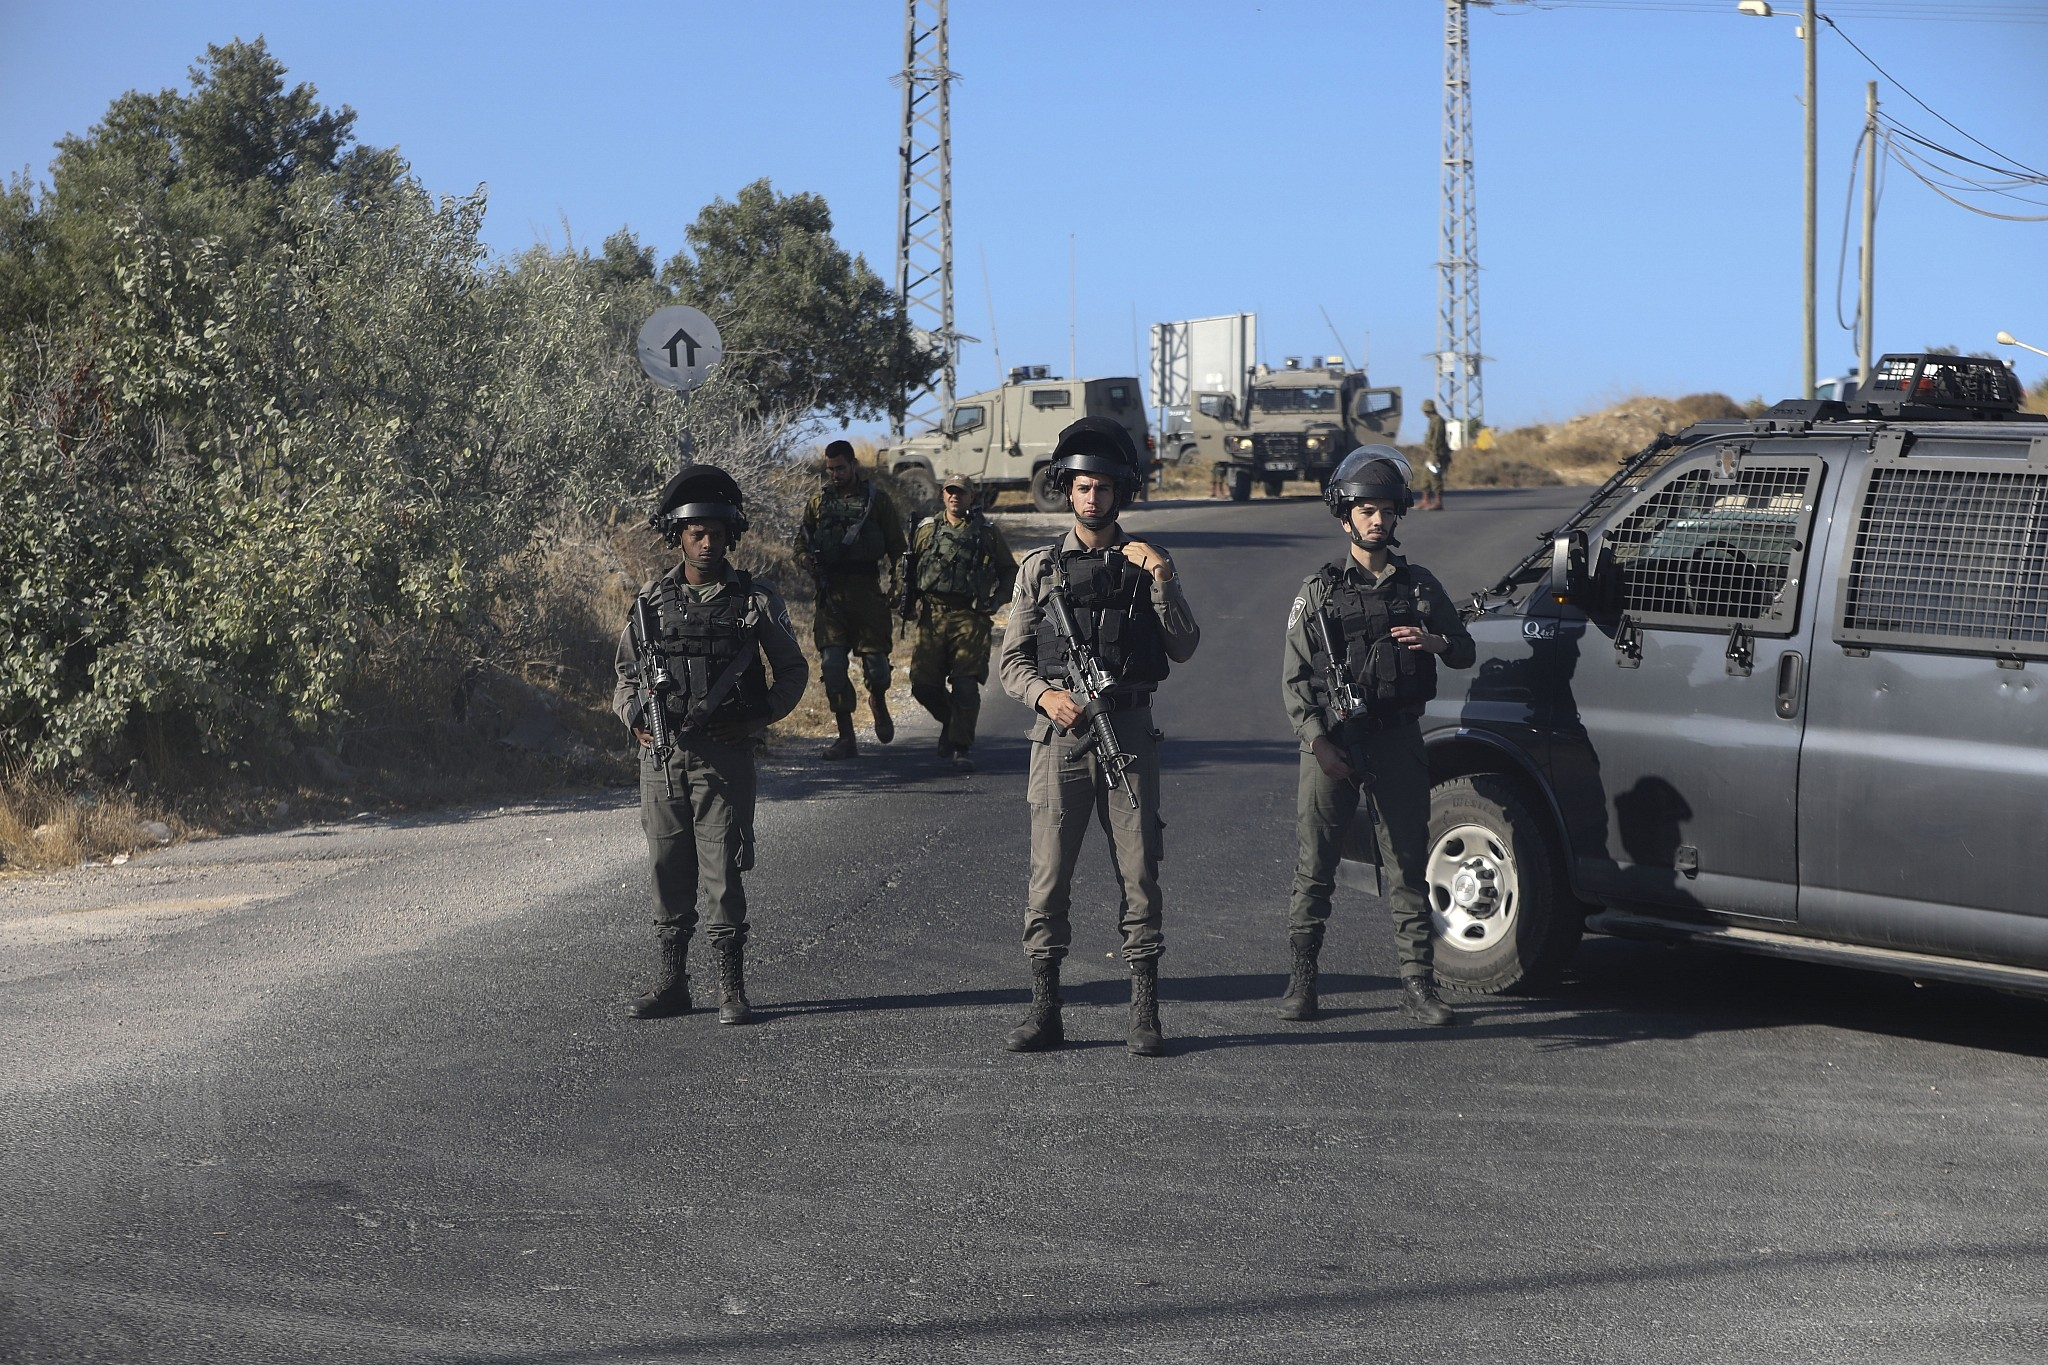 Israeli troops secure the area where a body of a soldier with stab wounds was found near Gush Etzion settlement in the West Bank, Thursday, August 8, 2019. (AP/Mahmoud Illean)